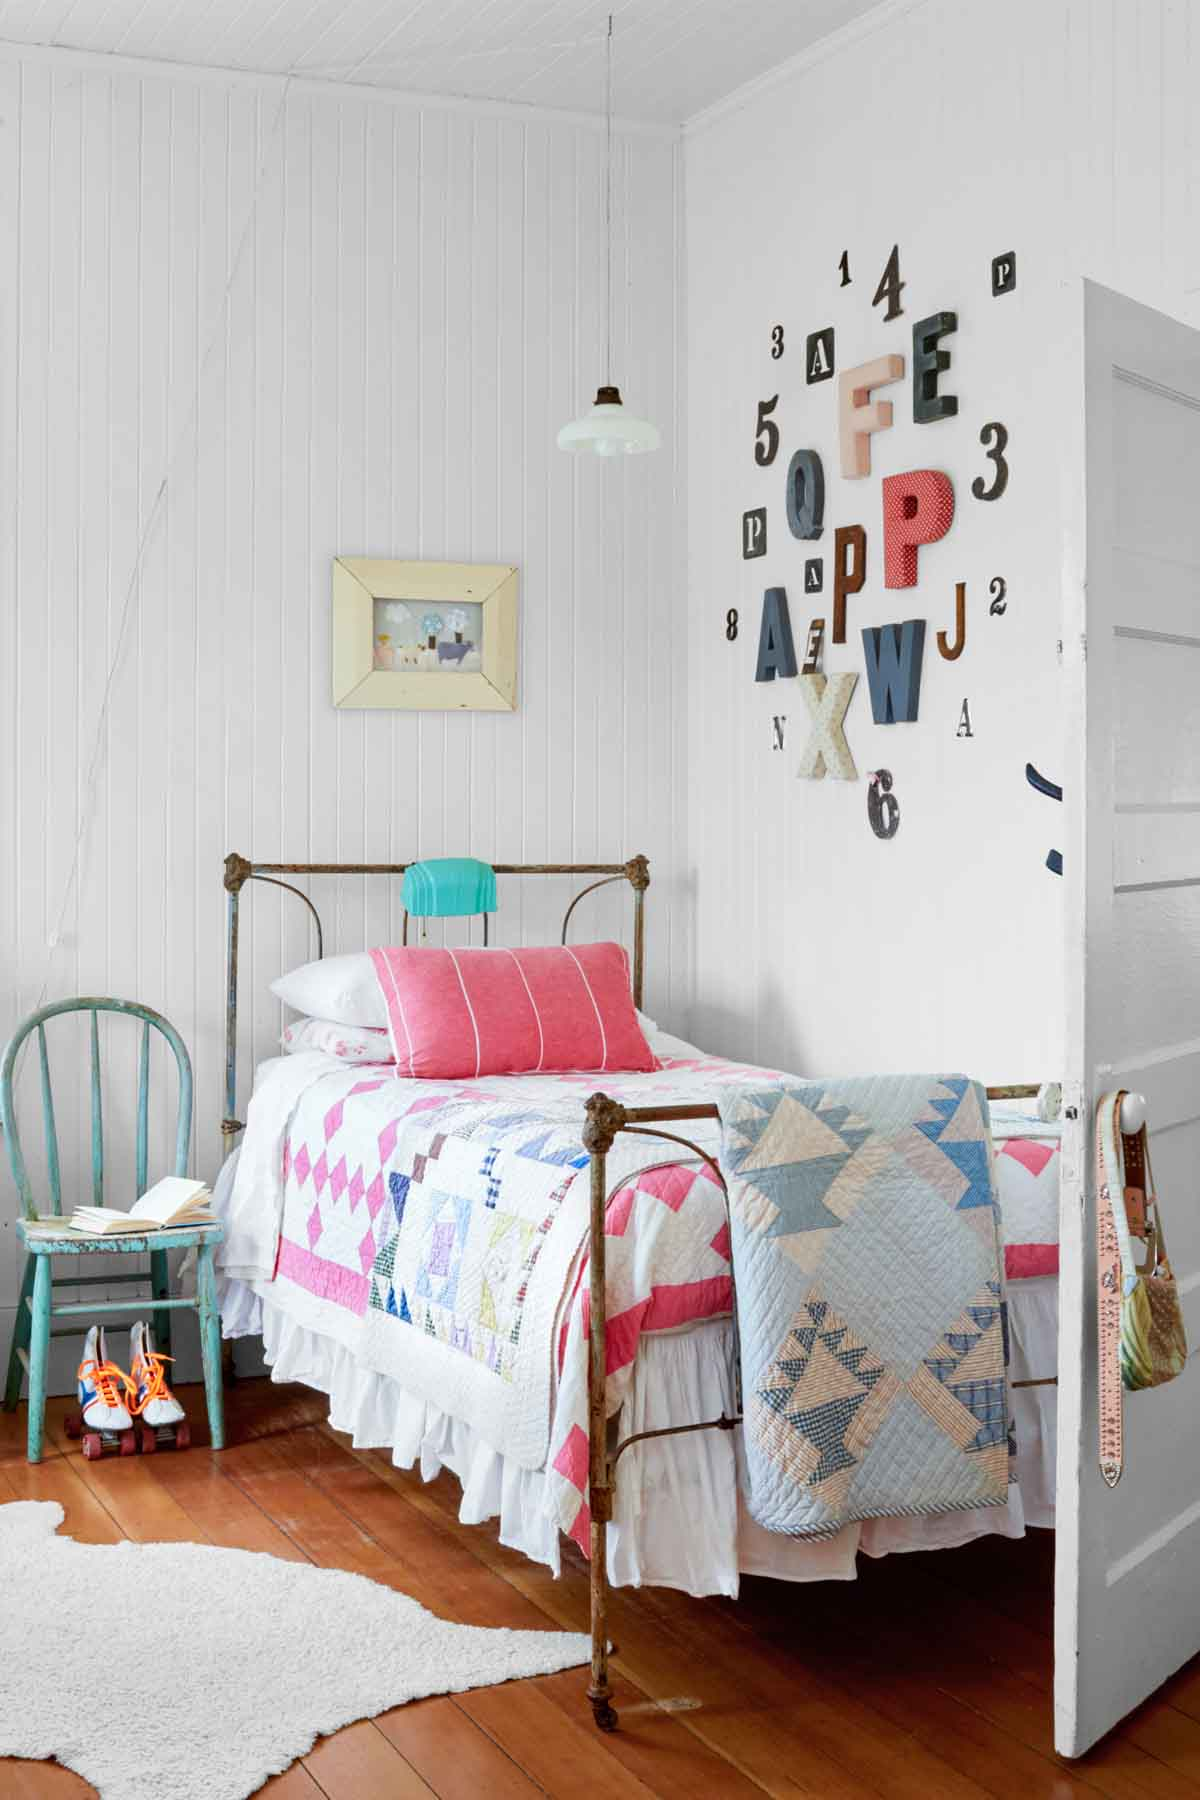 12 Fun Girl's Bedroom Decor Ideas - Cute Room Decorating ... on Girls Bedroom Ideas  id=57246